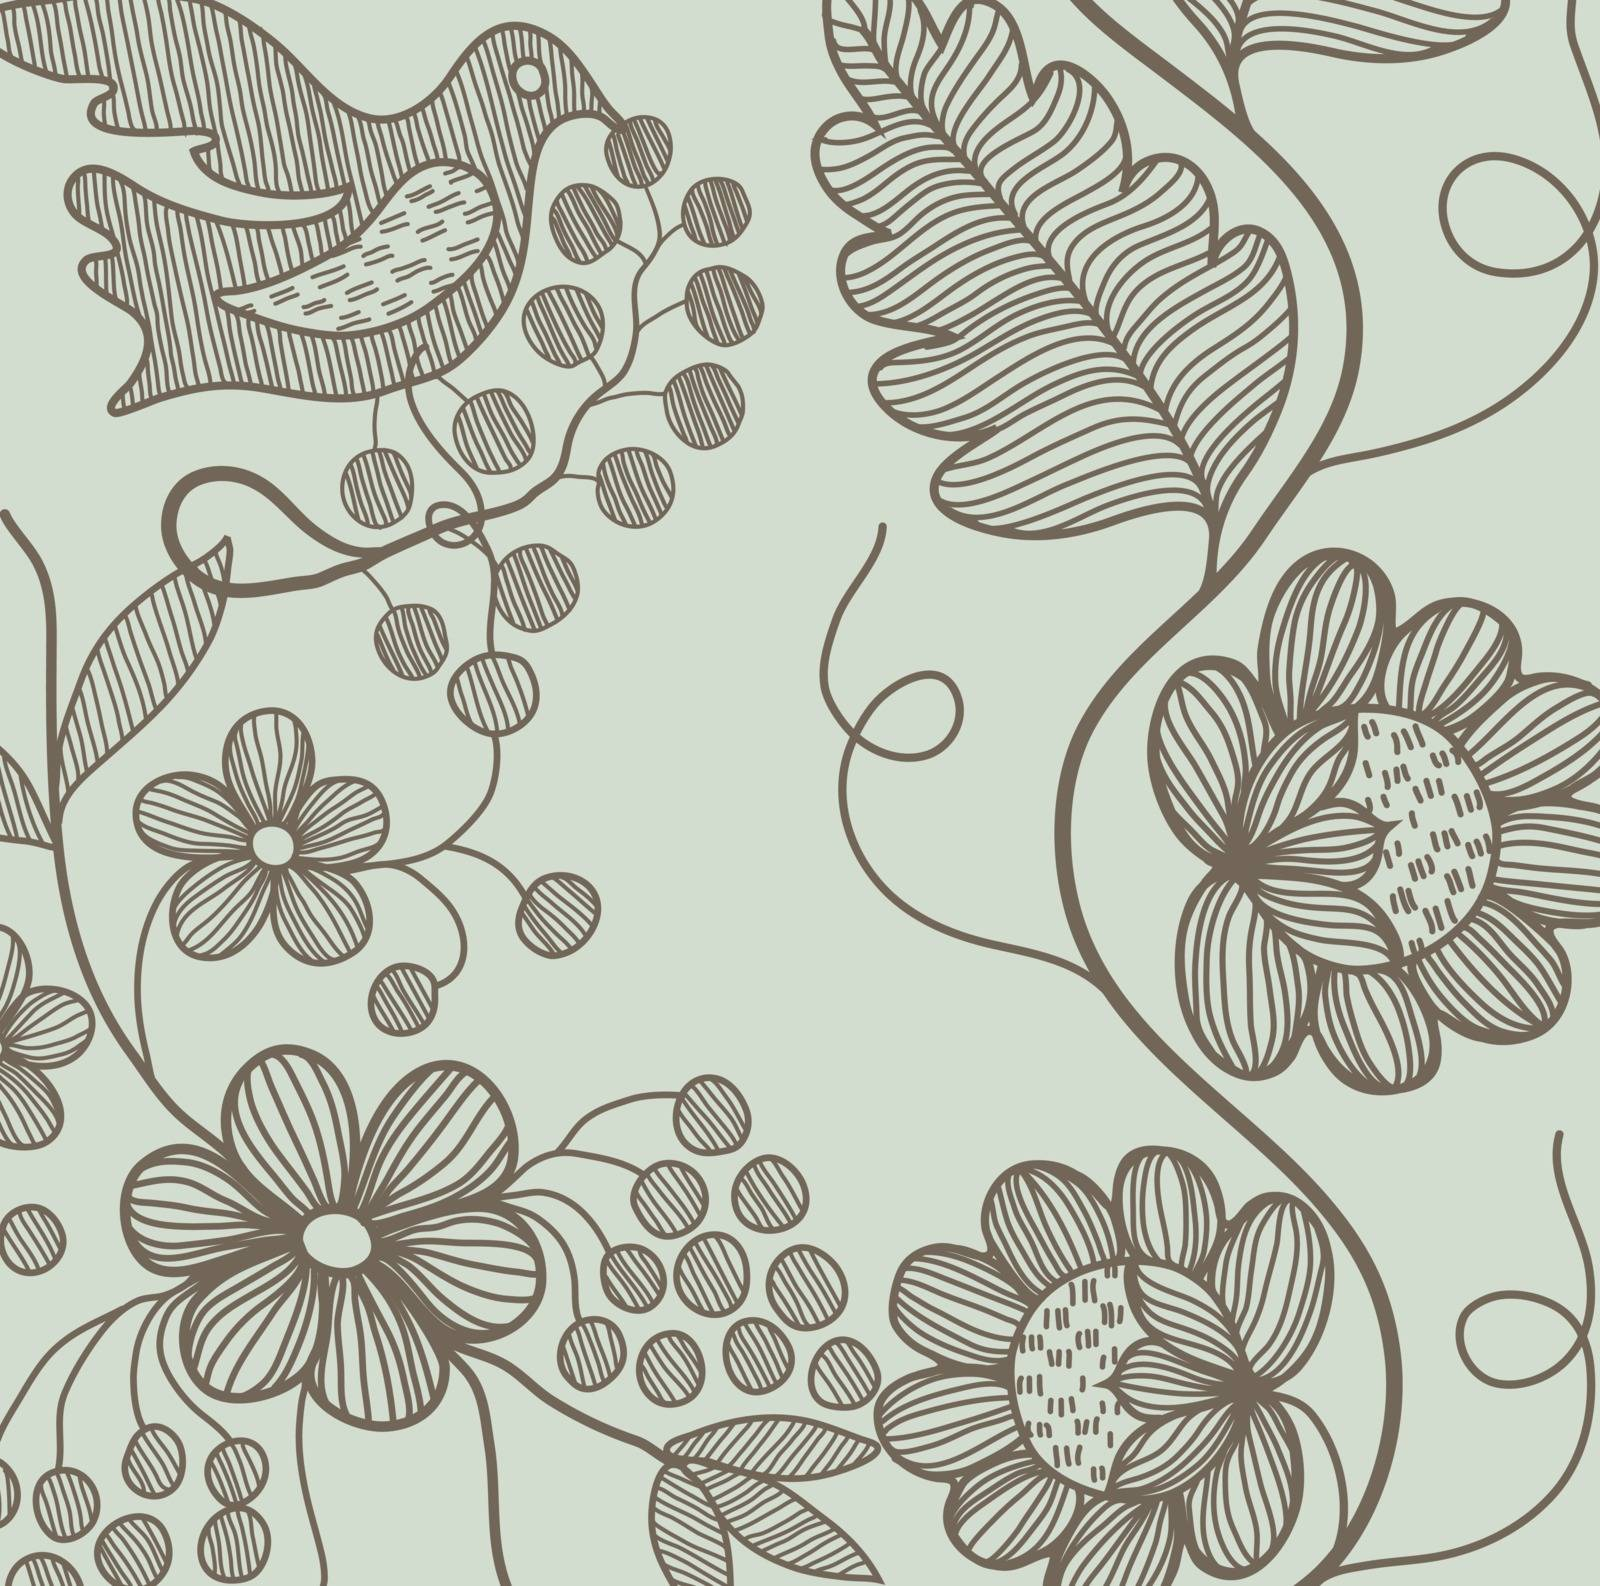 flower pattern with bird and national Ukrainian ornament